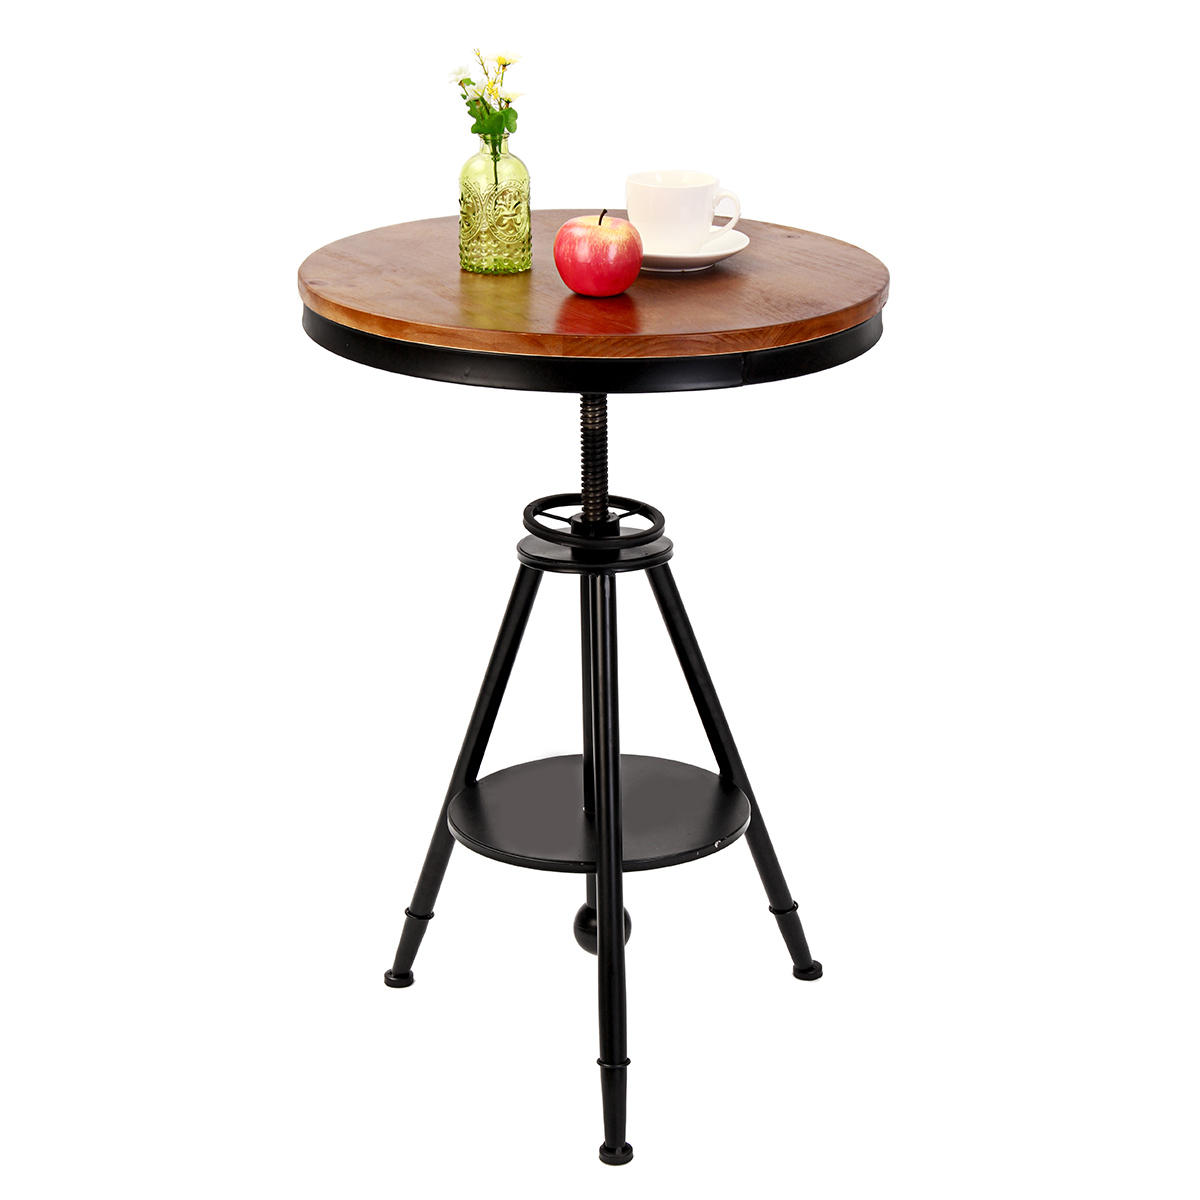 55cm Retro Round Dining Folding Table Lounge Bar Modern Metal Wooden Cafe Coffee Table